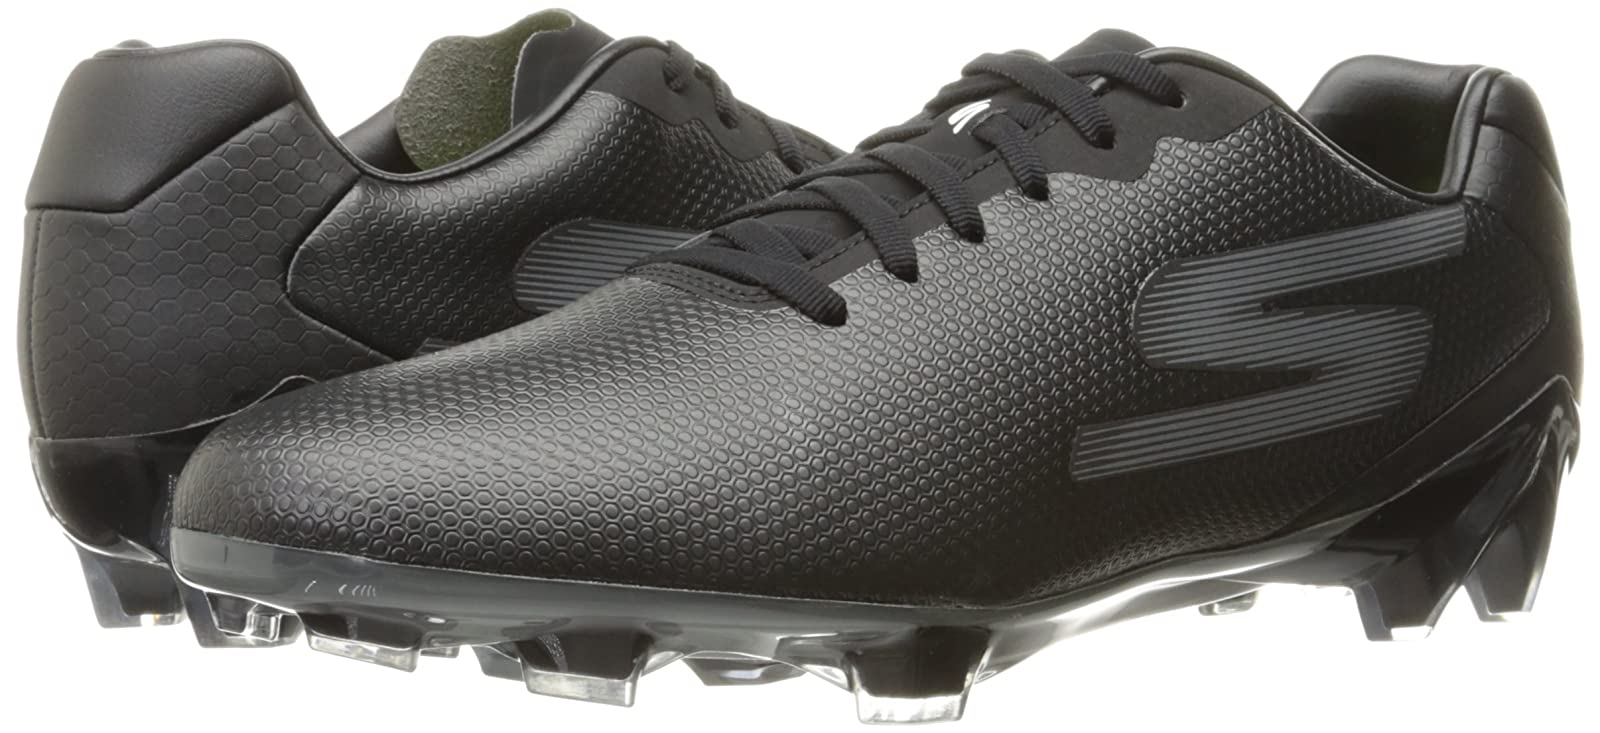 Skechers Performance Men's Go Galaxy FG White/Black - 6